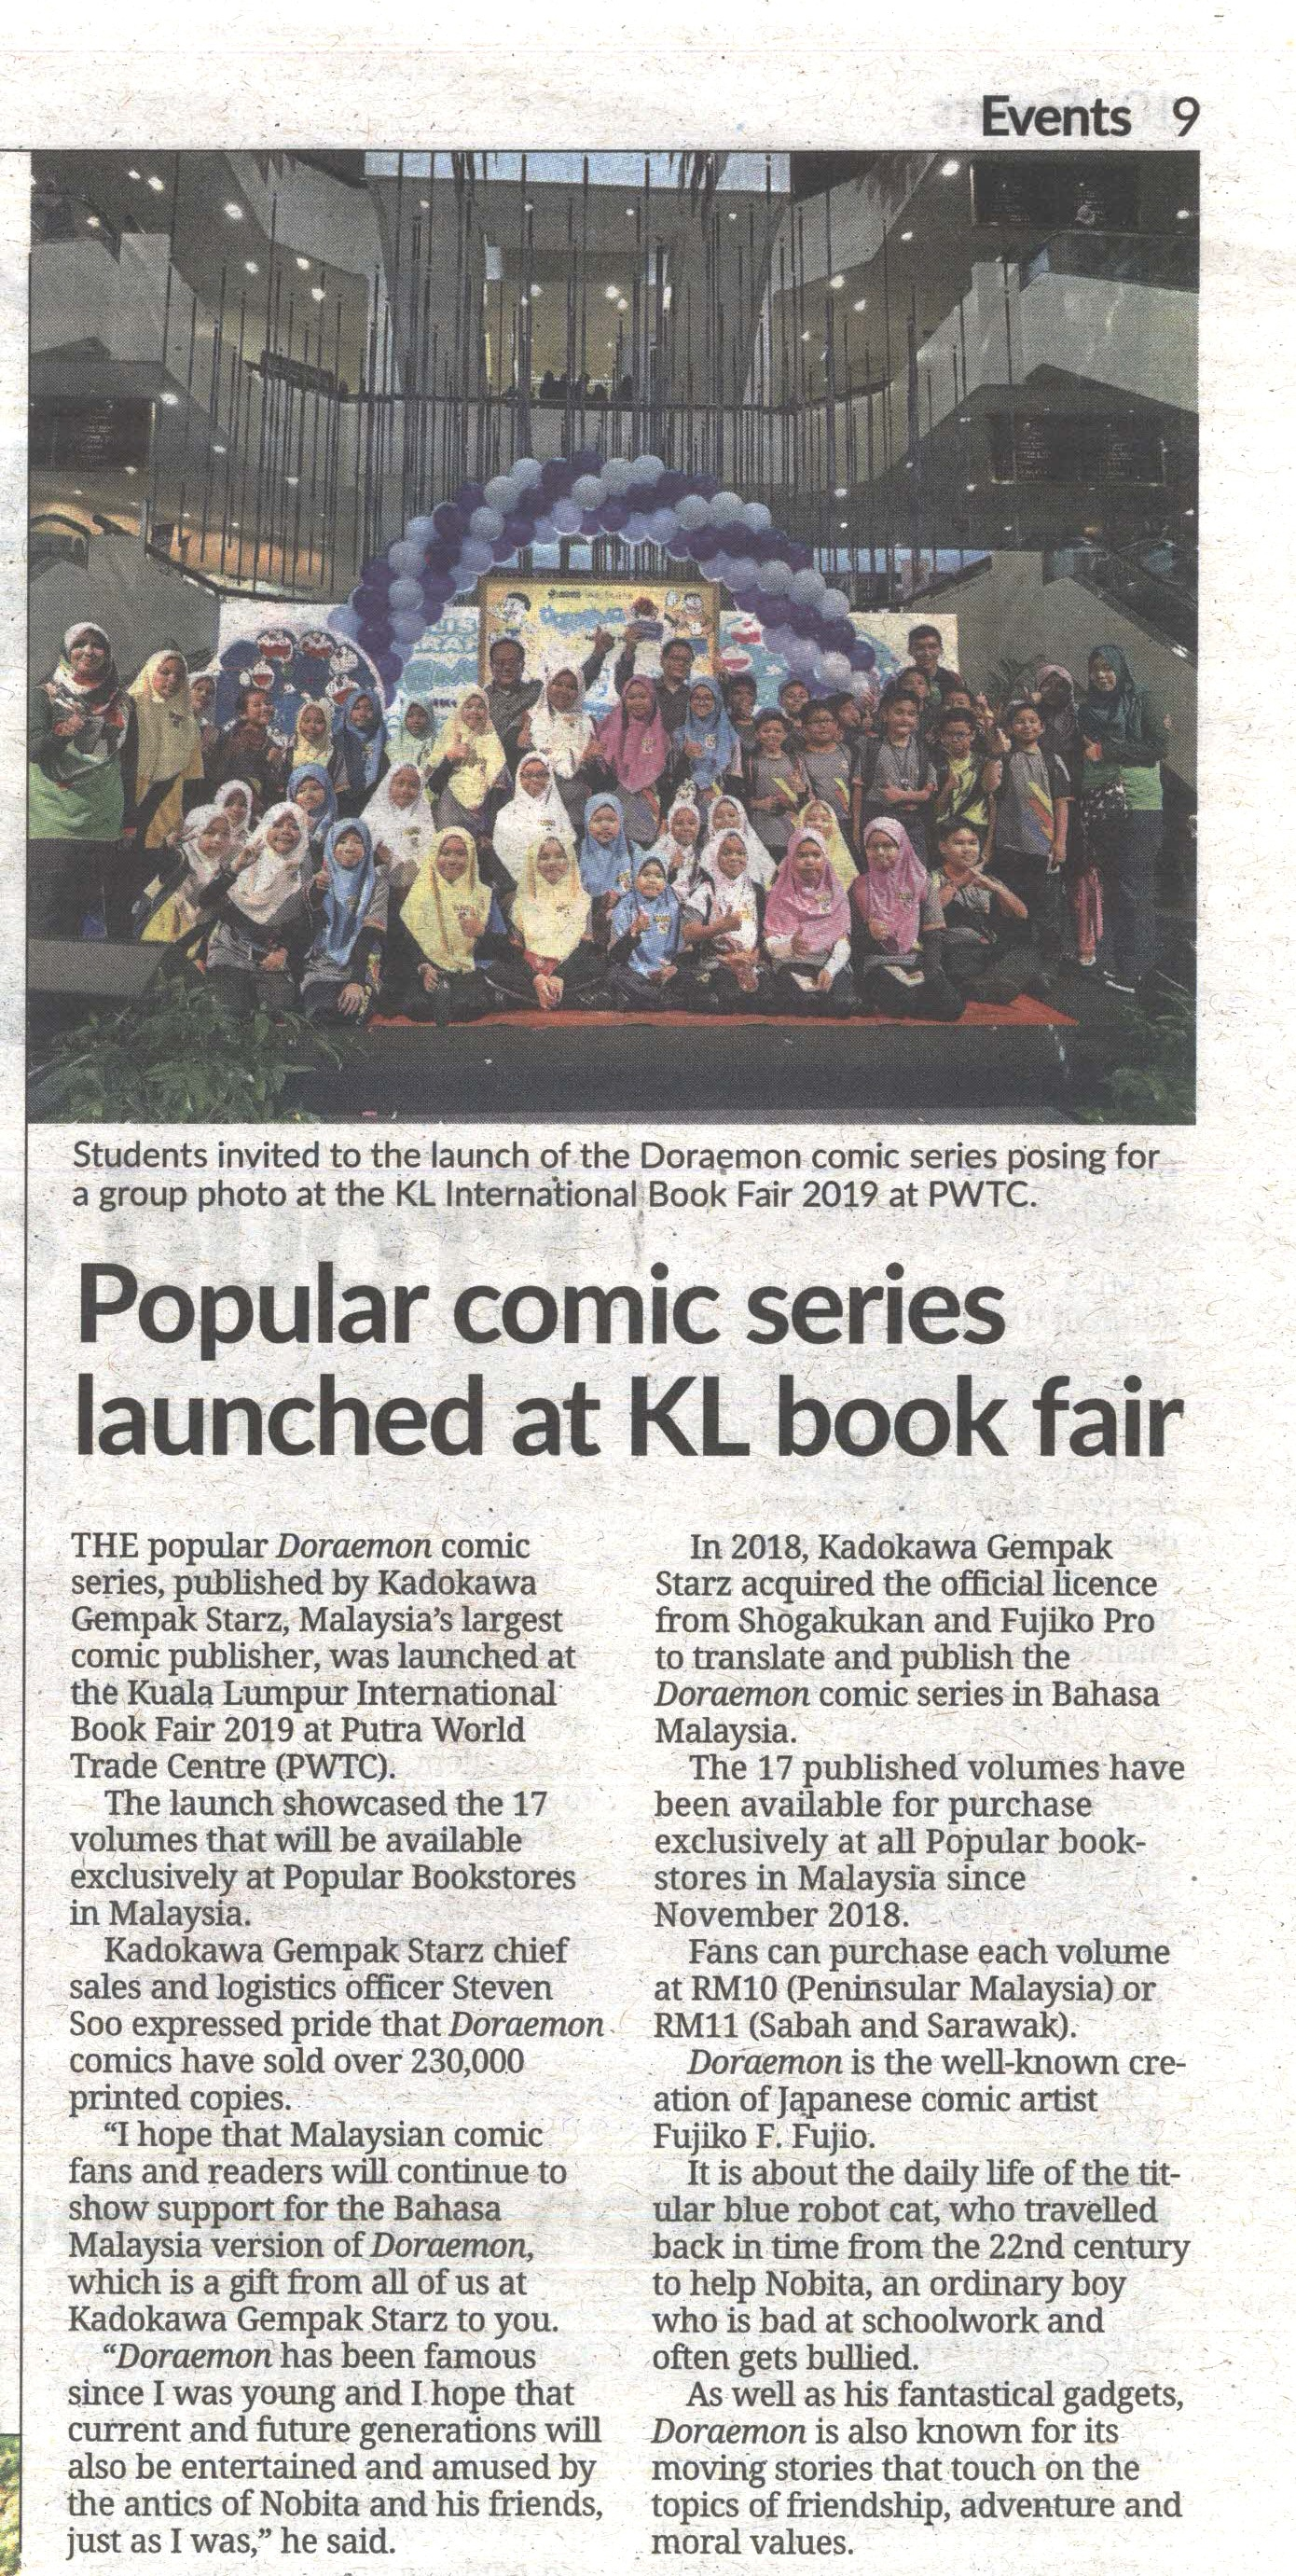 Malaysia publisher | Malay comic books | book publication in Malaysia